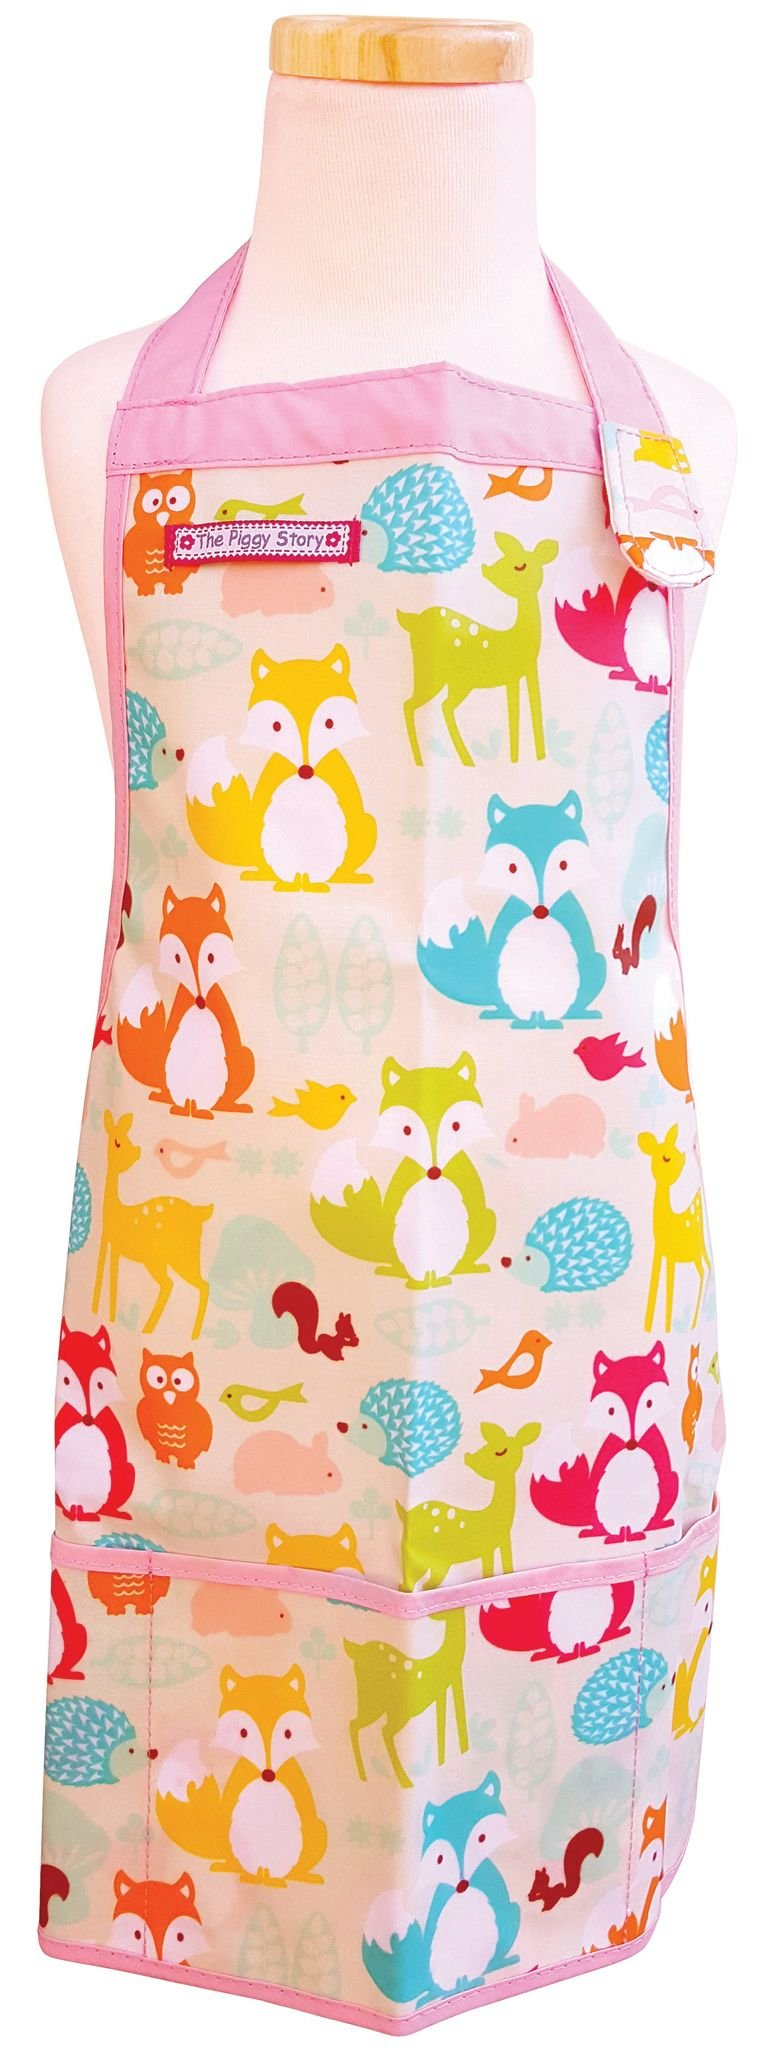 The Piggy Story 'Fox & Woodland Animals' Child's Fun Time Apron for Arts, Crafts and Cooking